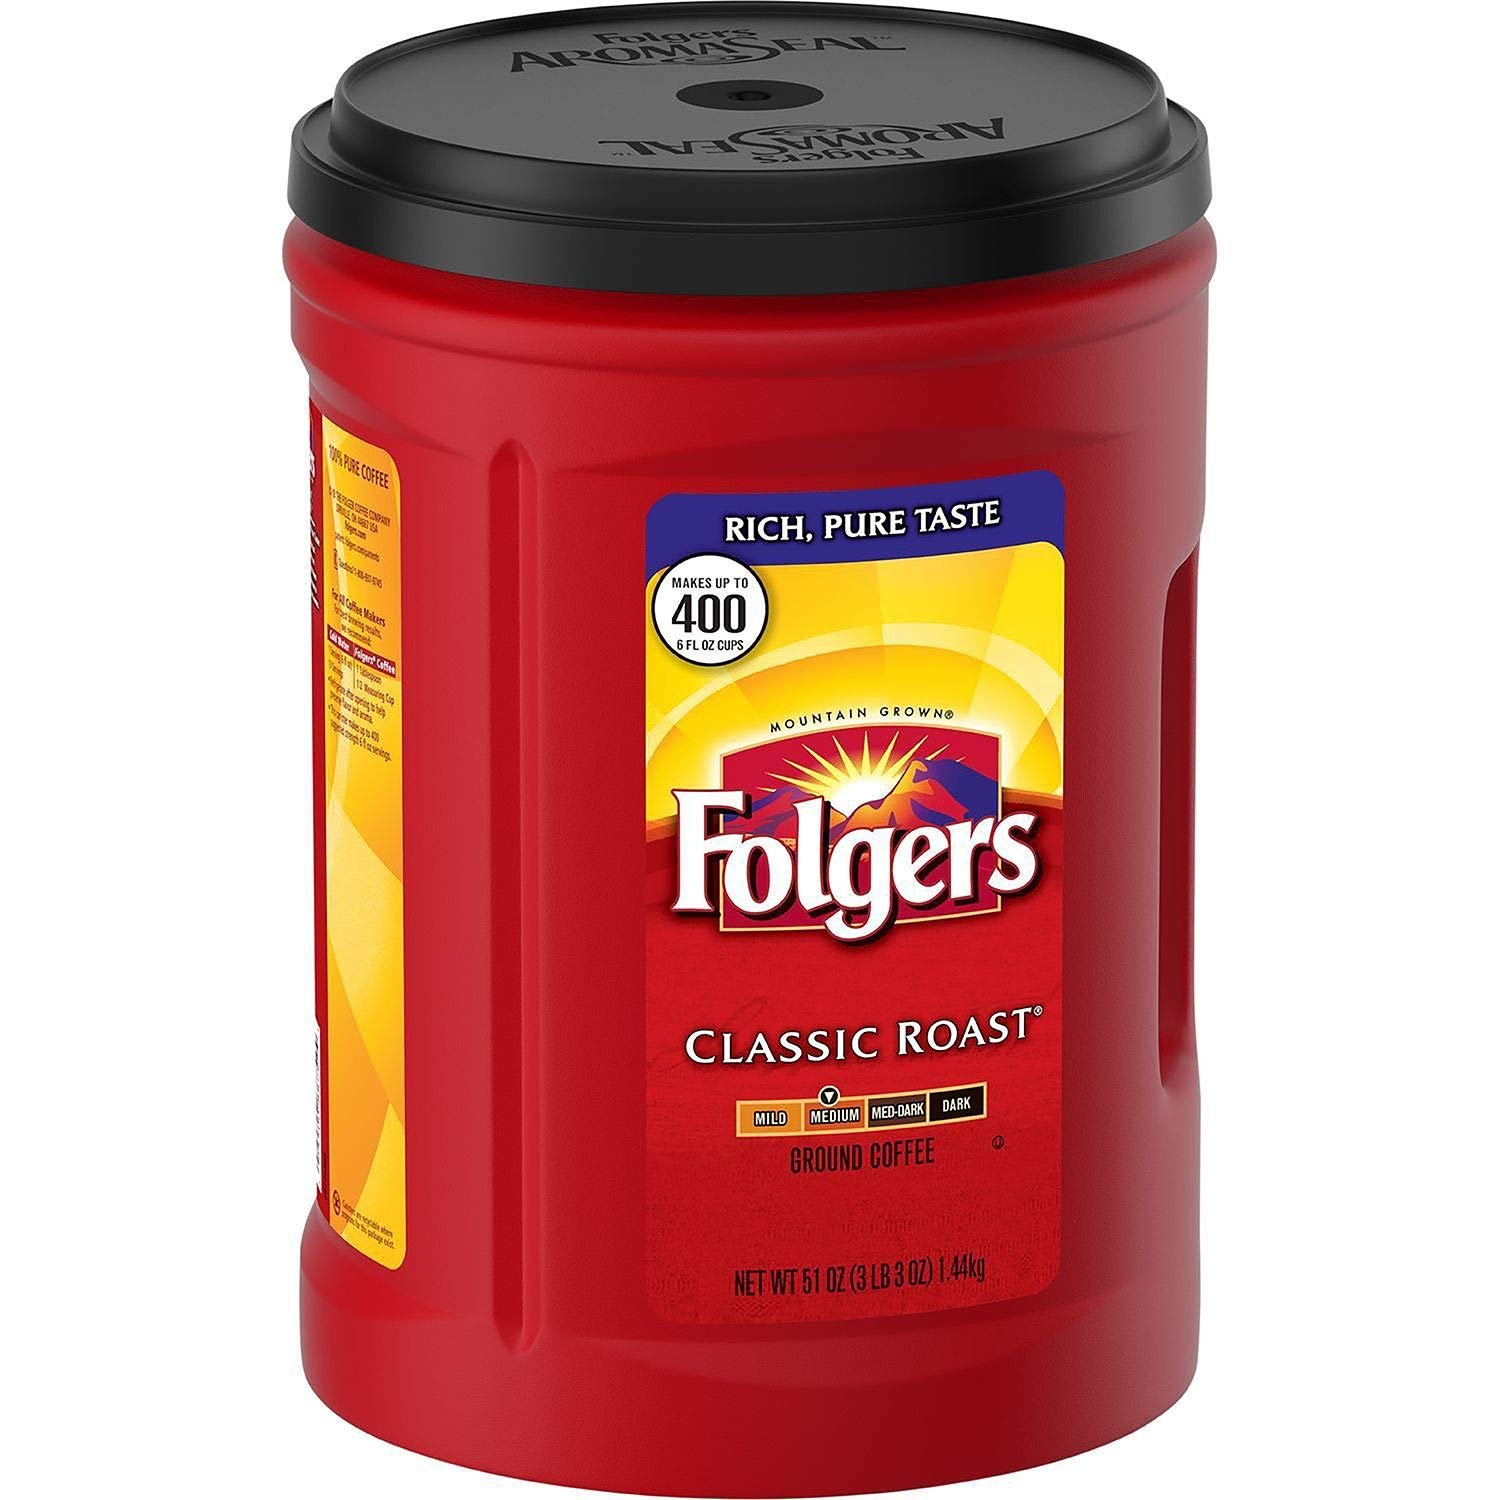 Folgers Medium Roast Coffee, Classic 192 oz 4 Count by Folgers (Image #1)